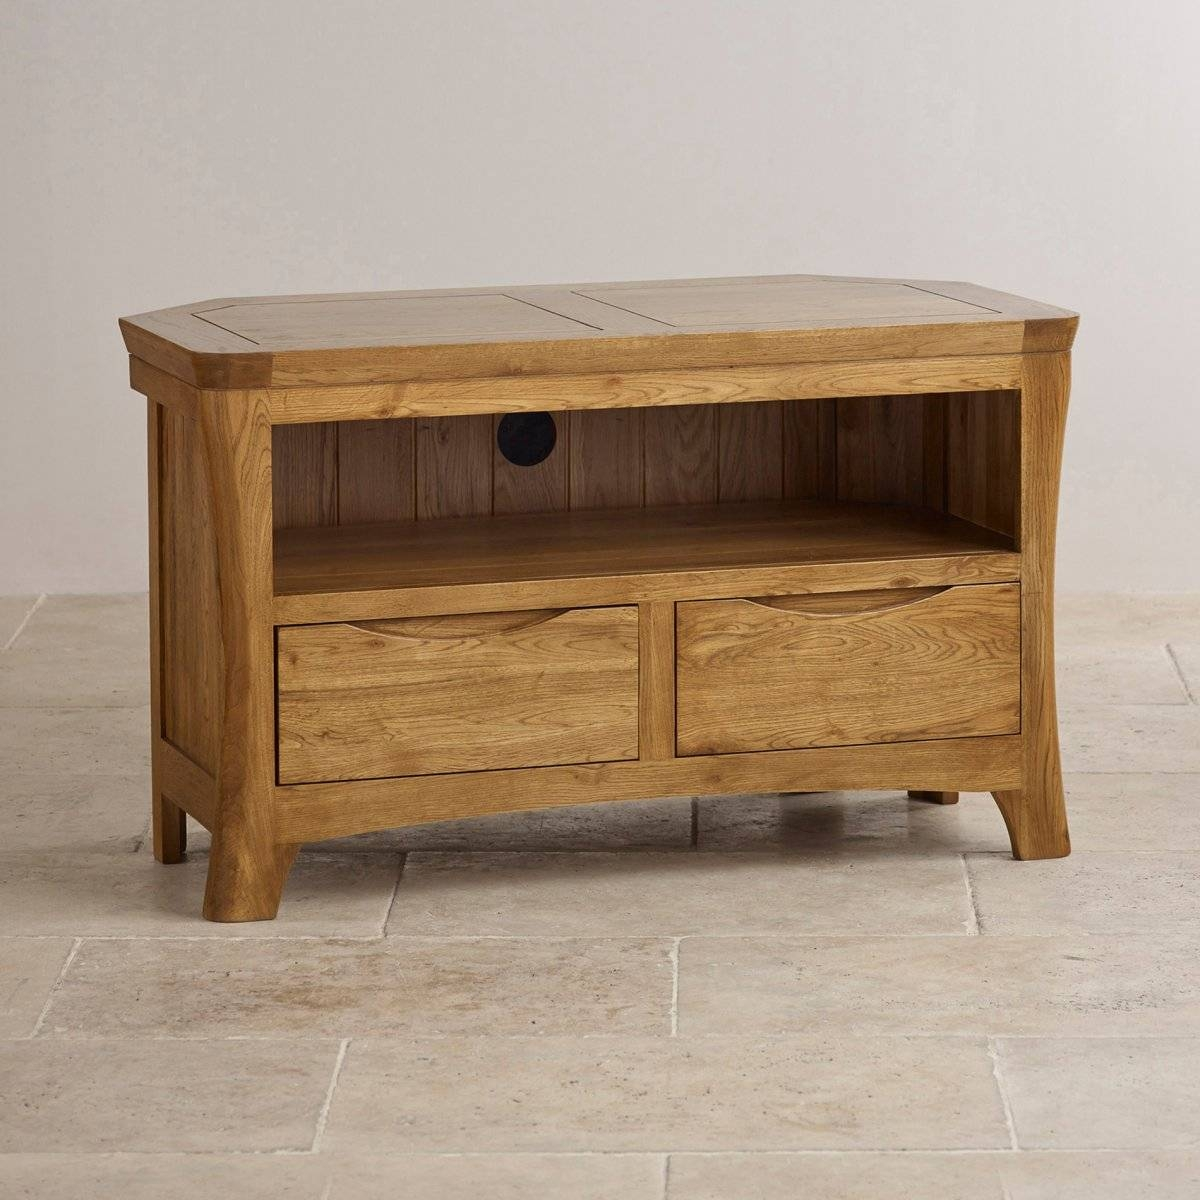 Orrick Corner Tv Cabinet In Rustic Oak | Oak Furniture Land within Rustic Corner Tv Stands (Image 7 of 15)